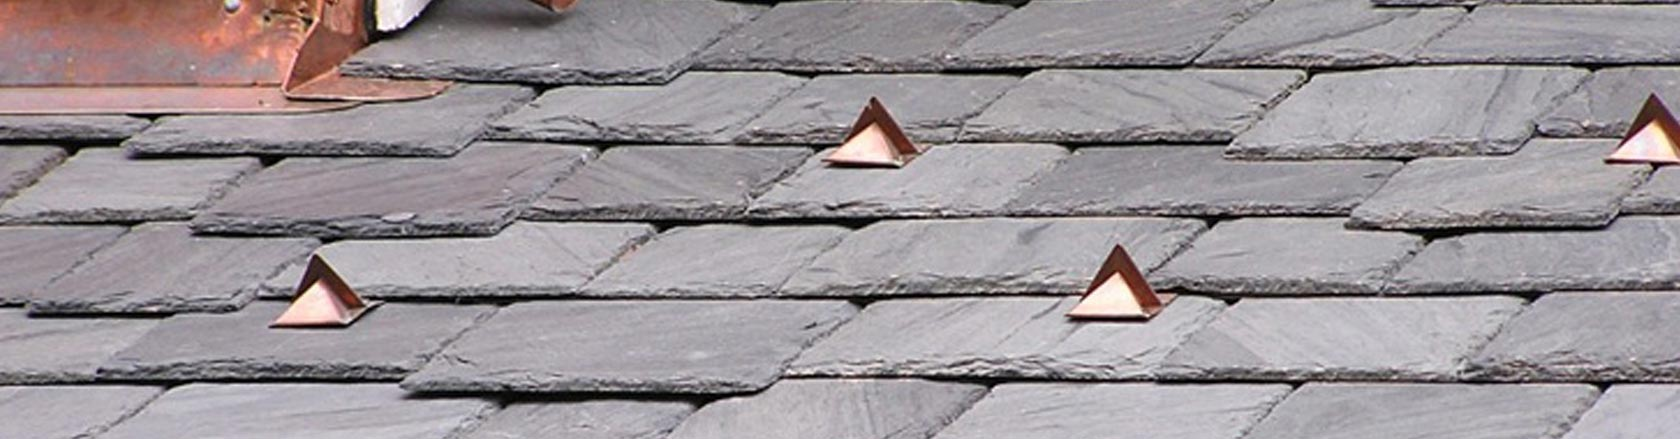 Free Lightweight Slate Roof Consultation